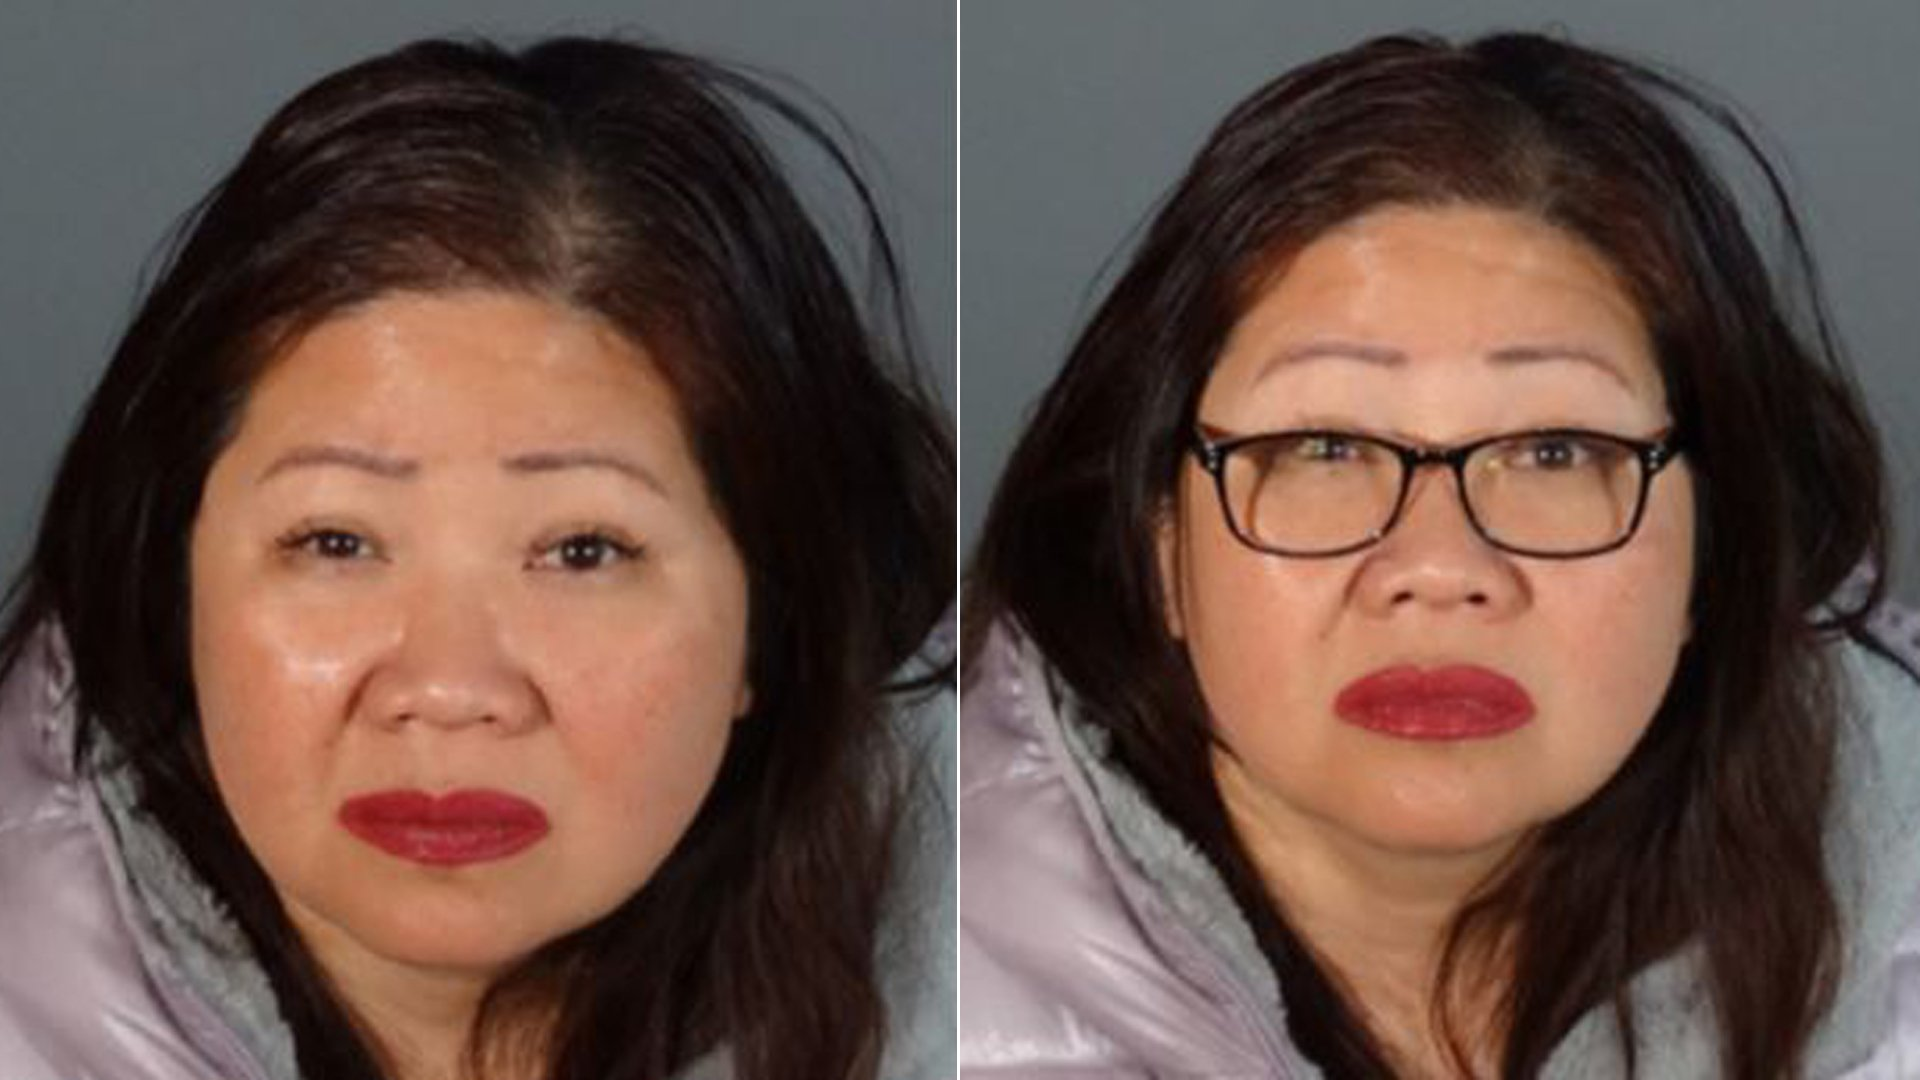 Sheila Paguirigan Solis is shown in booking photos released by the Los Angeles County Sheriff's Department on Jan. 22, 2020.